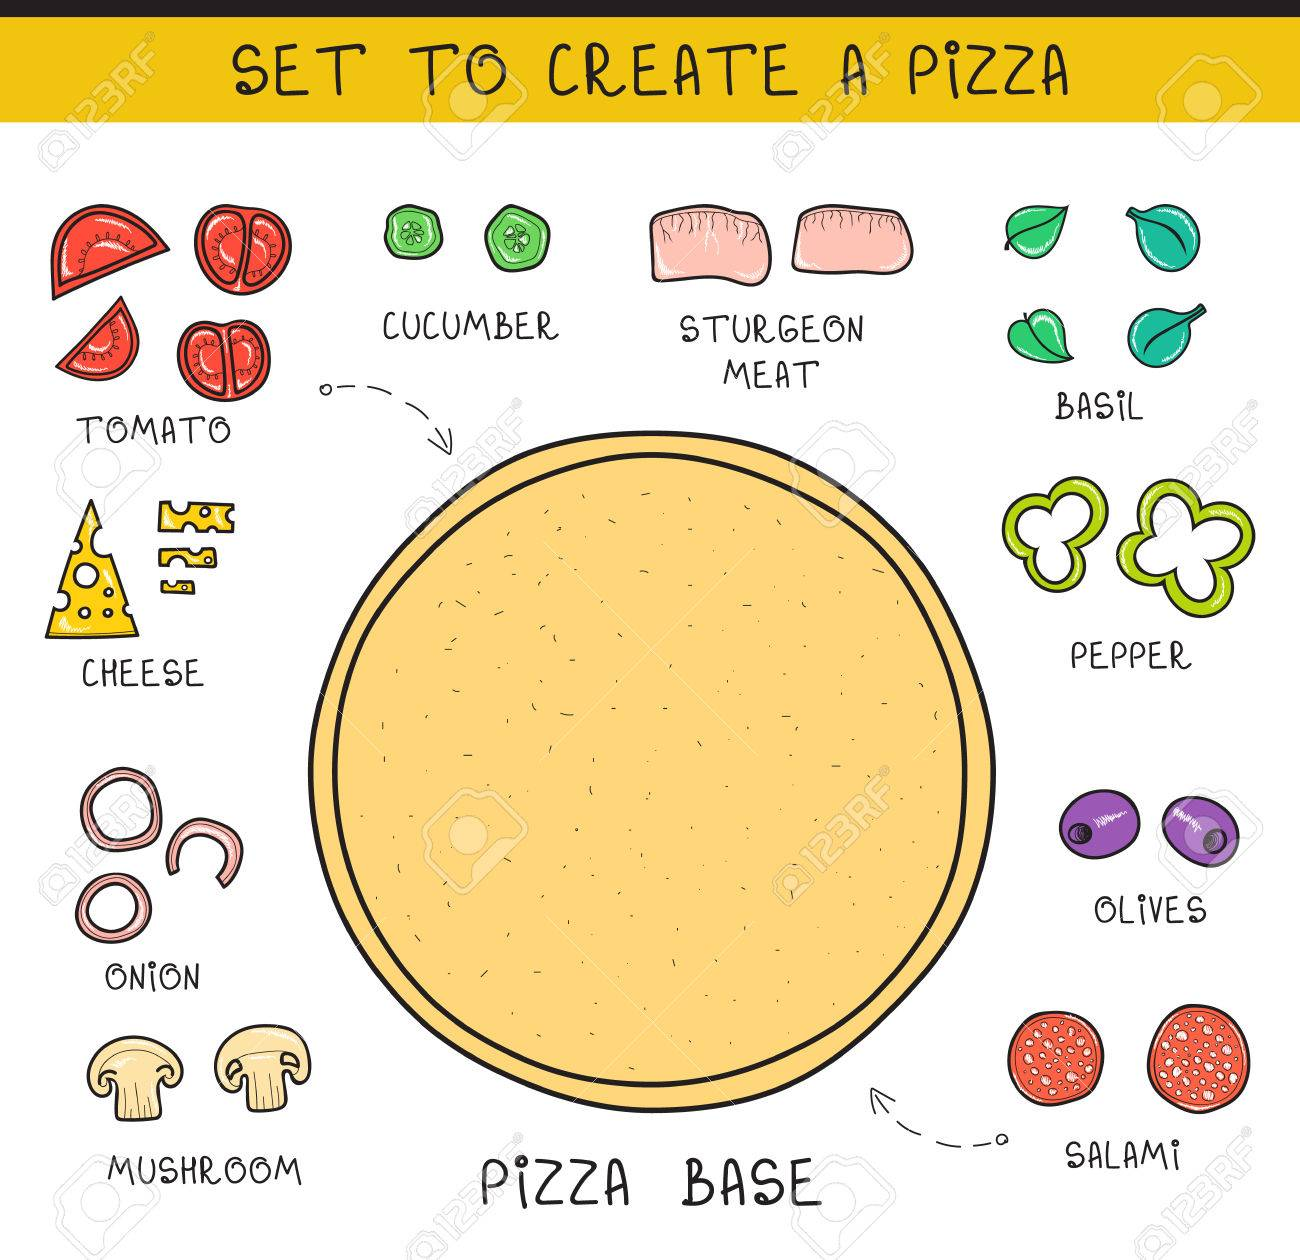 Unusual 010 Editor Templates Big 1 Inch Hexagon Template Clean 10 Envelope Template Illustrator 100 Day Glasses Template Young 100th Day Hat Template Gray1096 Template Doodle Set Of Ingredients To Build Pizza. Template Pizza. Sliced ..